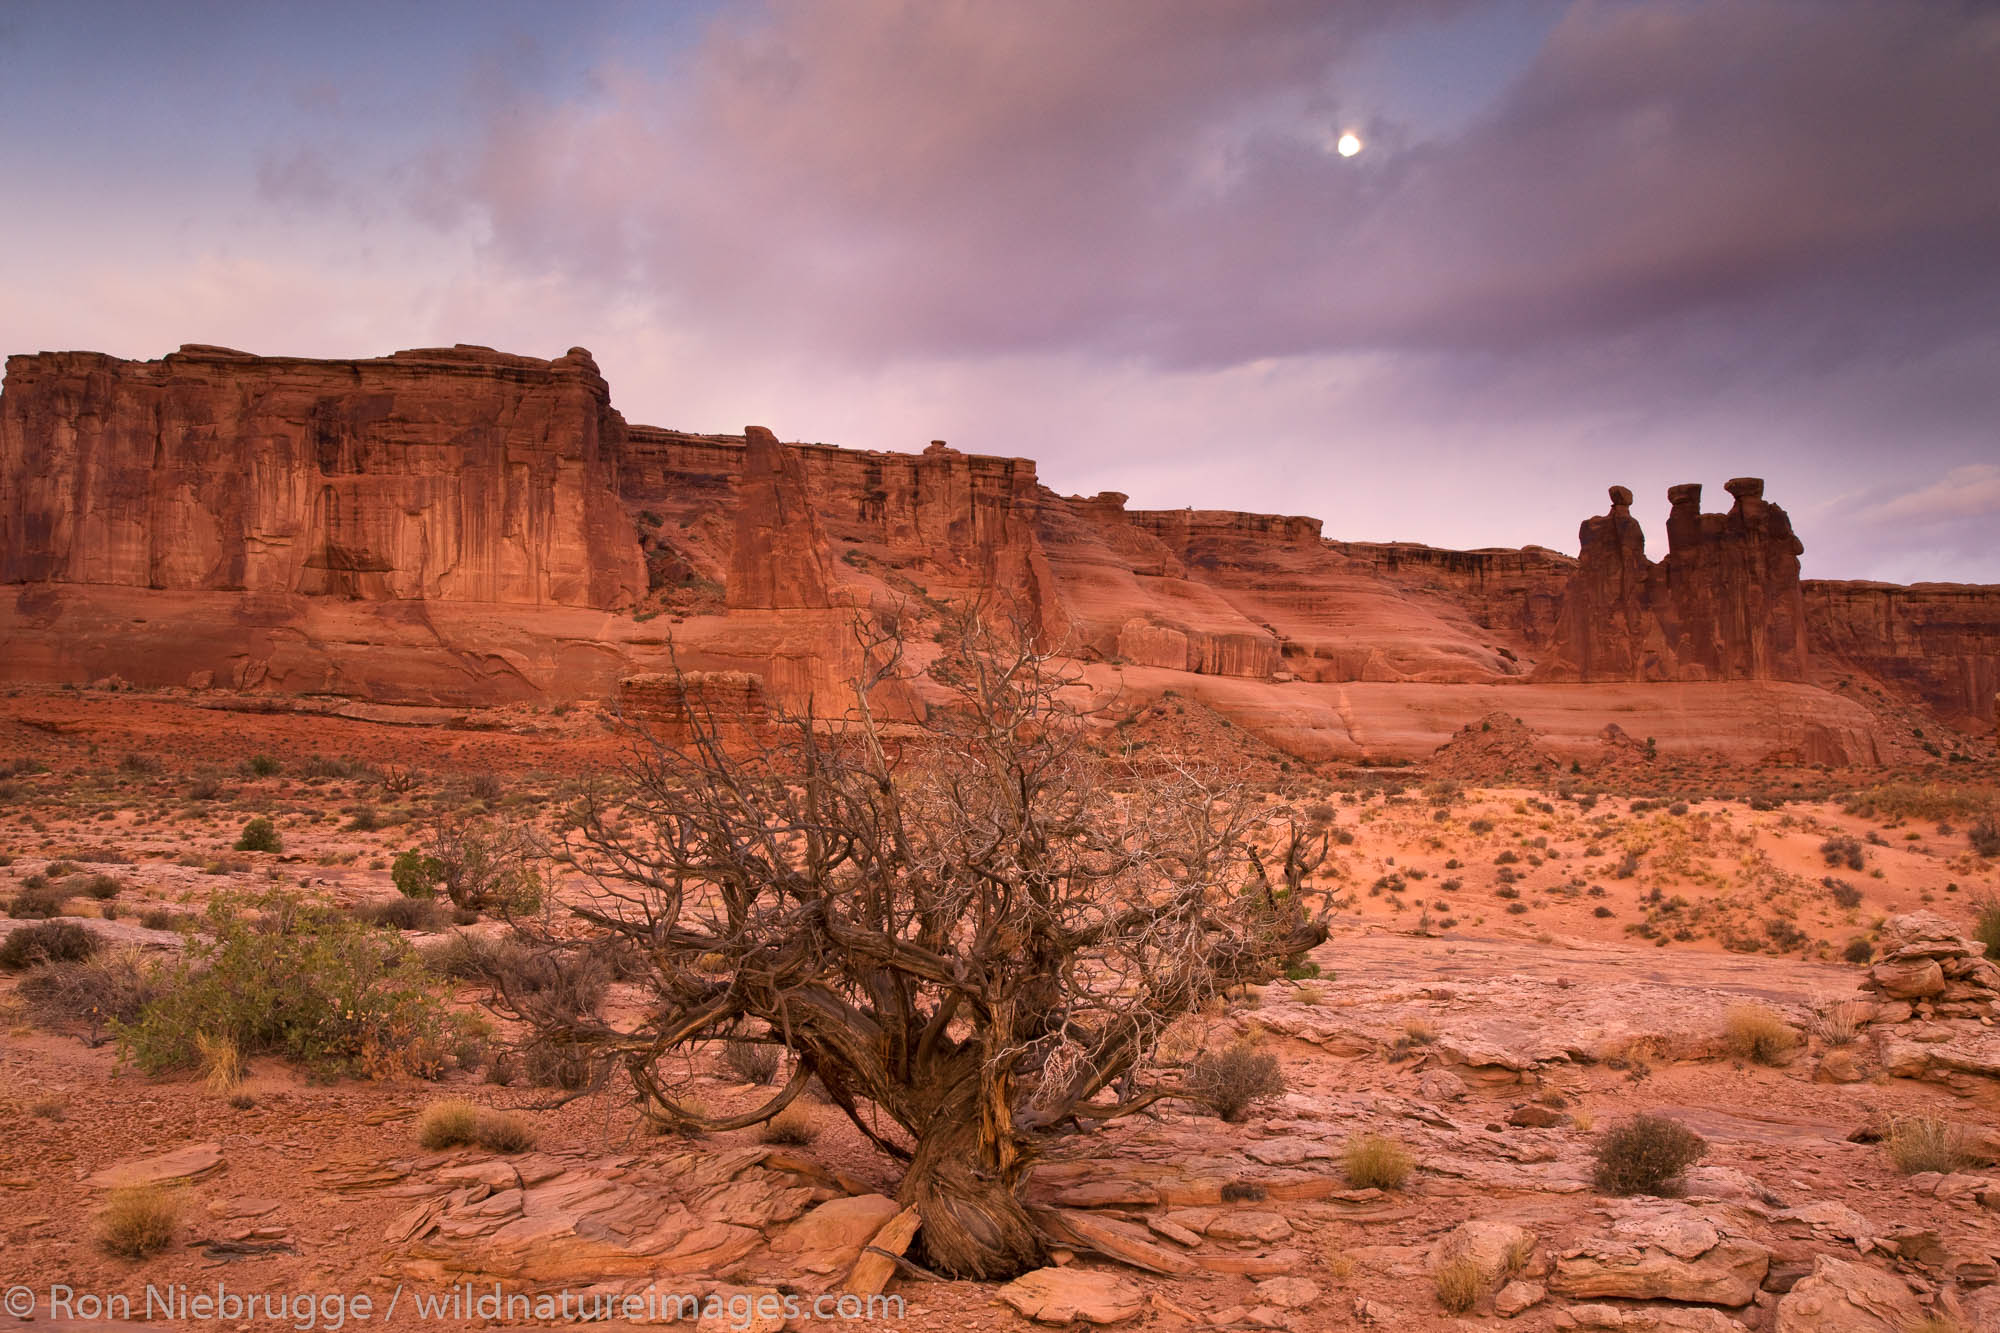 TheThree Gossips in Courthouse Towers area, Arches National Park, Moab, Utah.